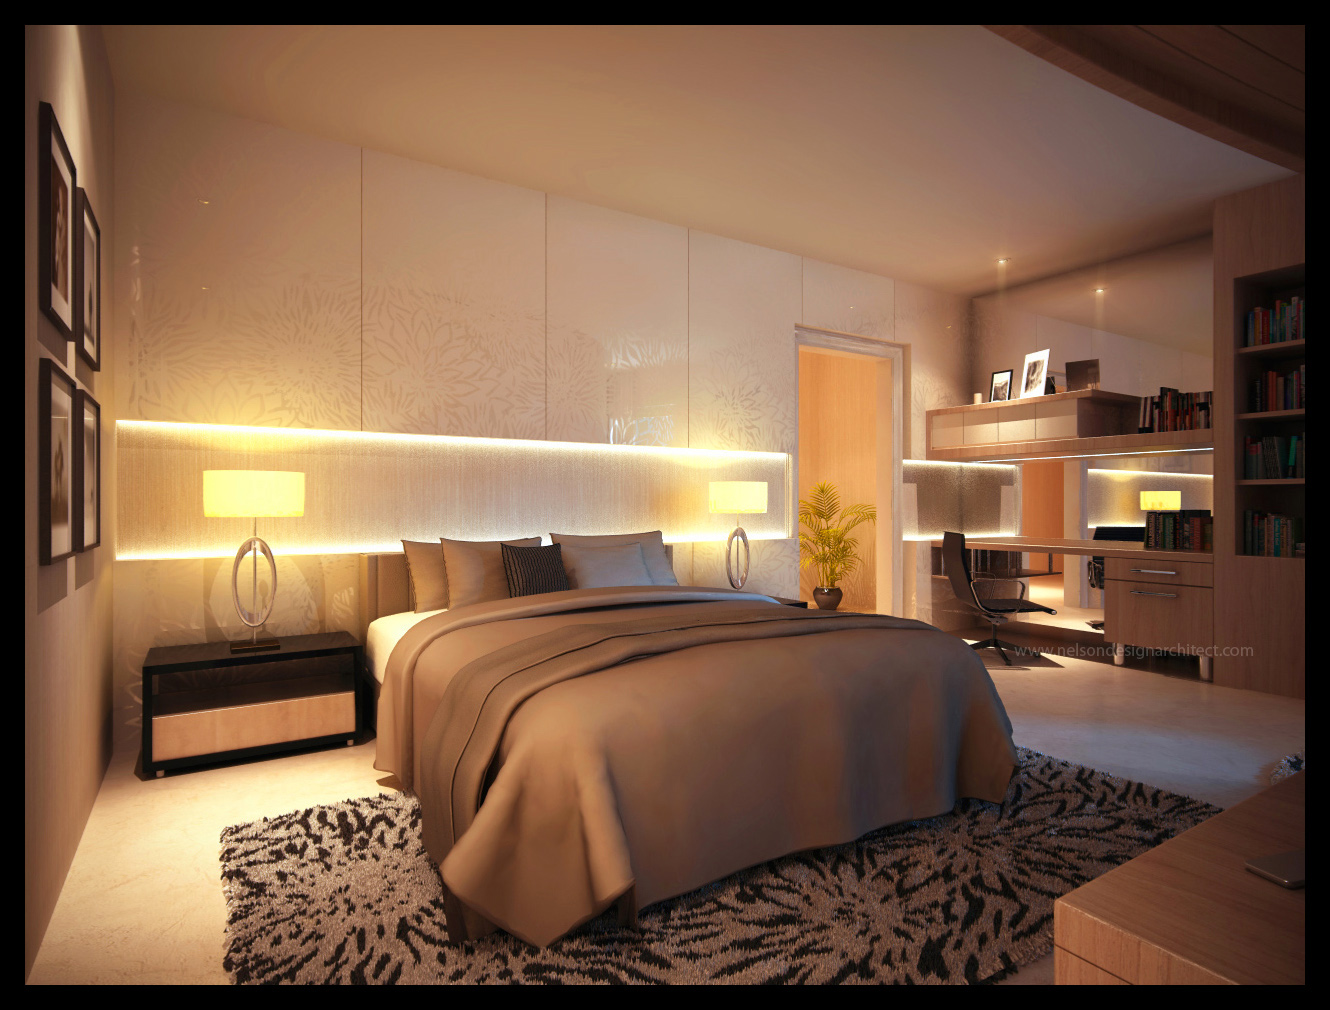 25 Best Bedroom Designs Ideas The WoW Style